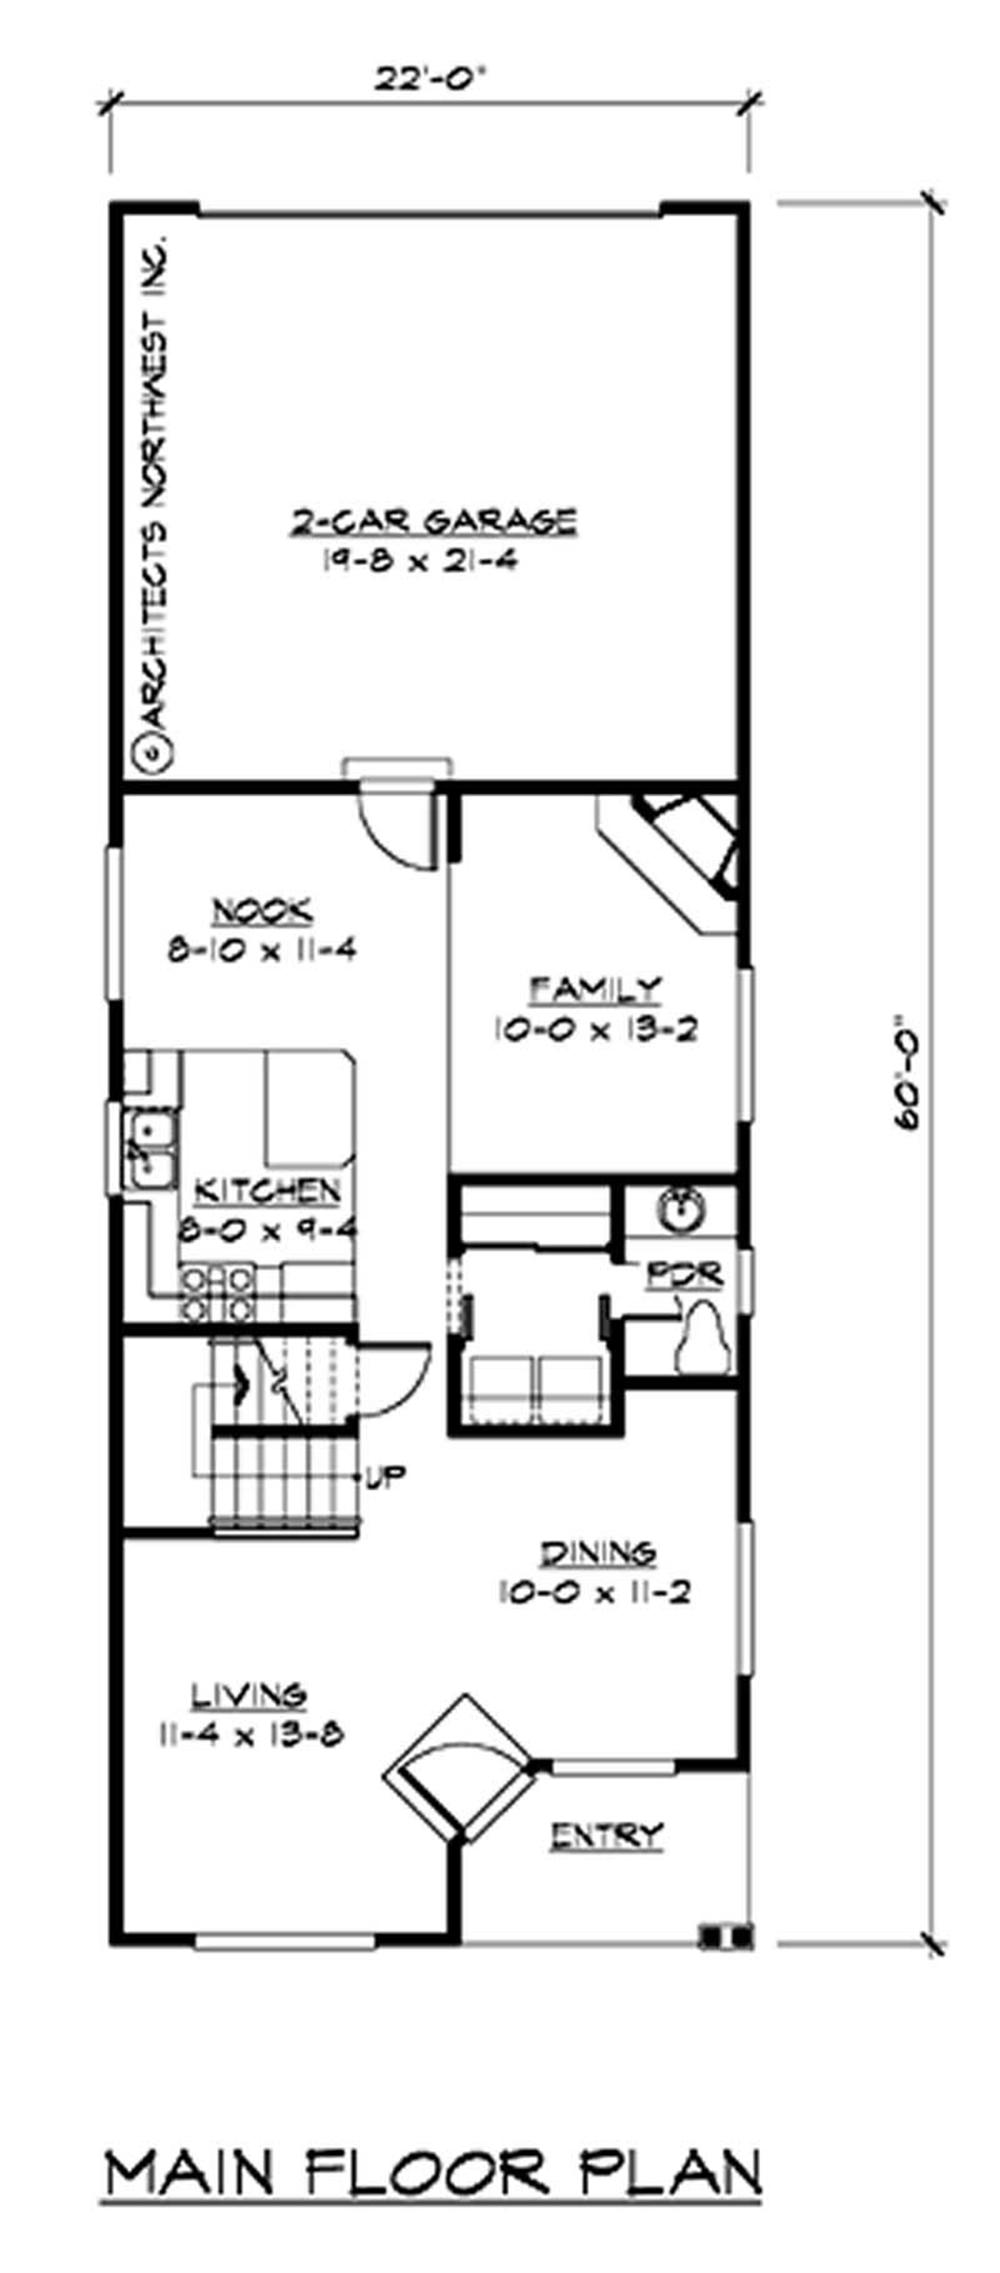 Large Images For House Plan 115 1317